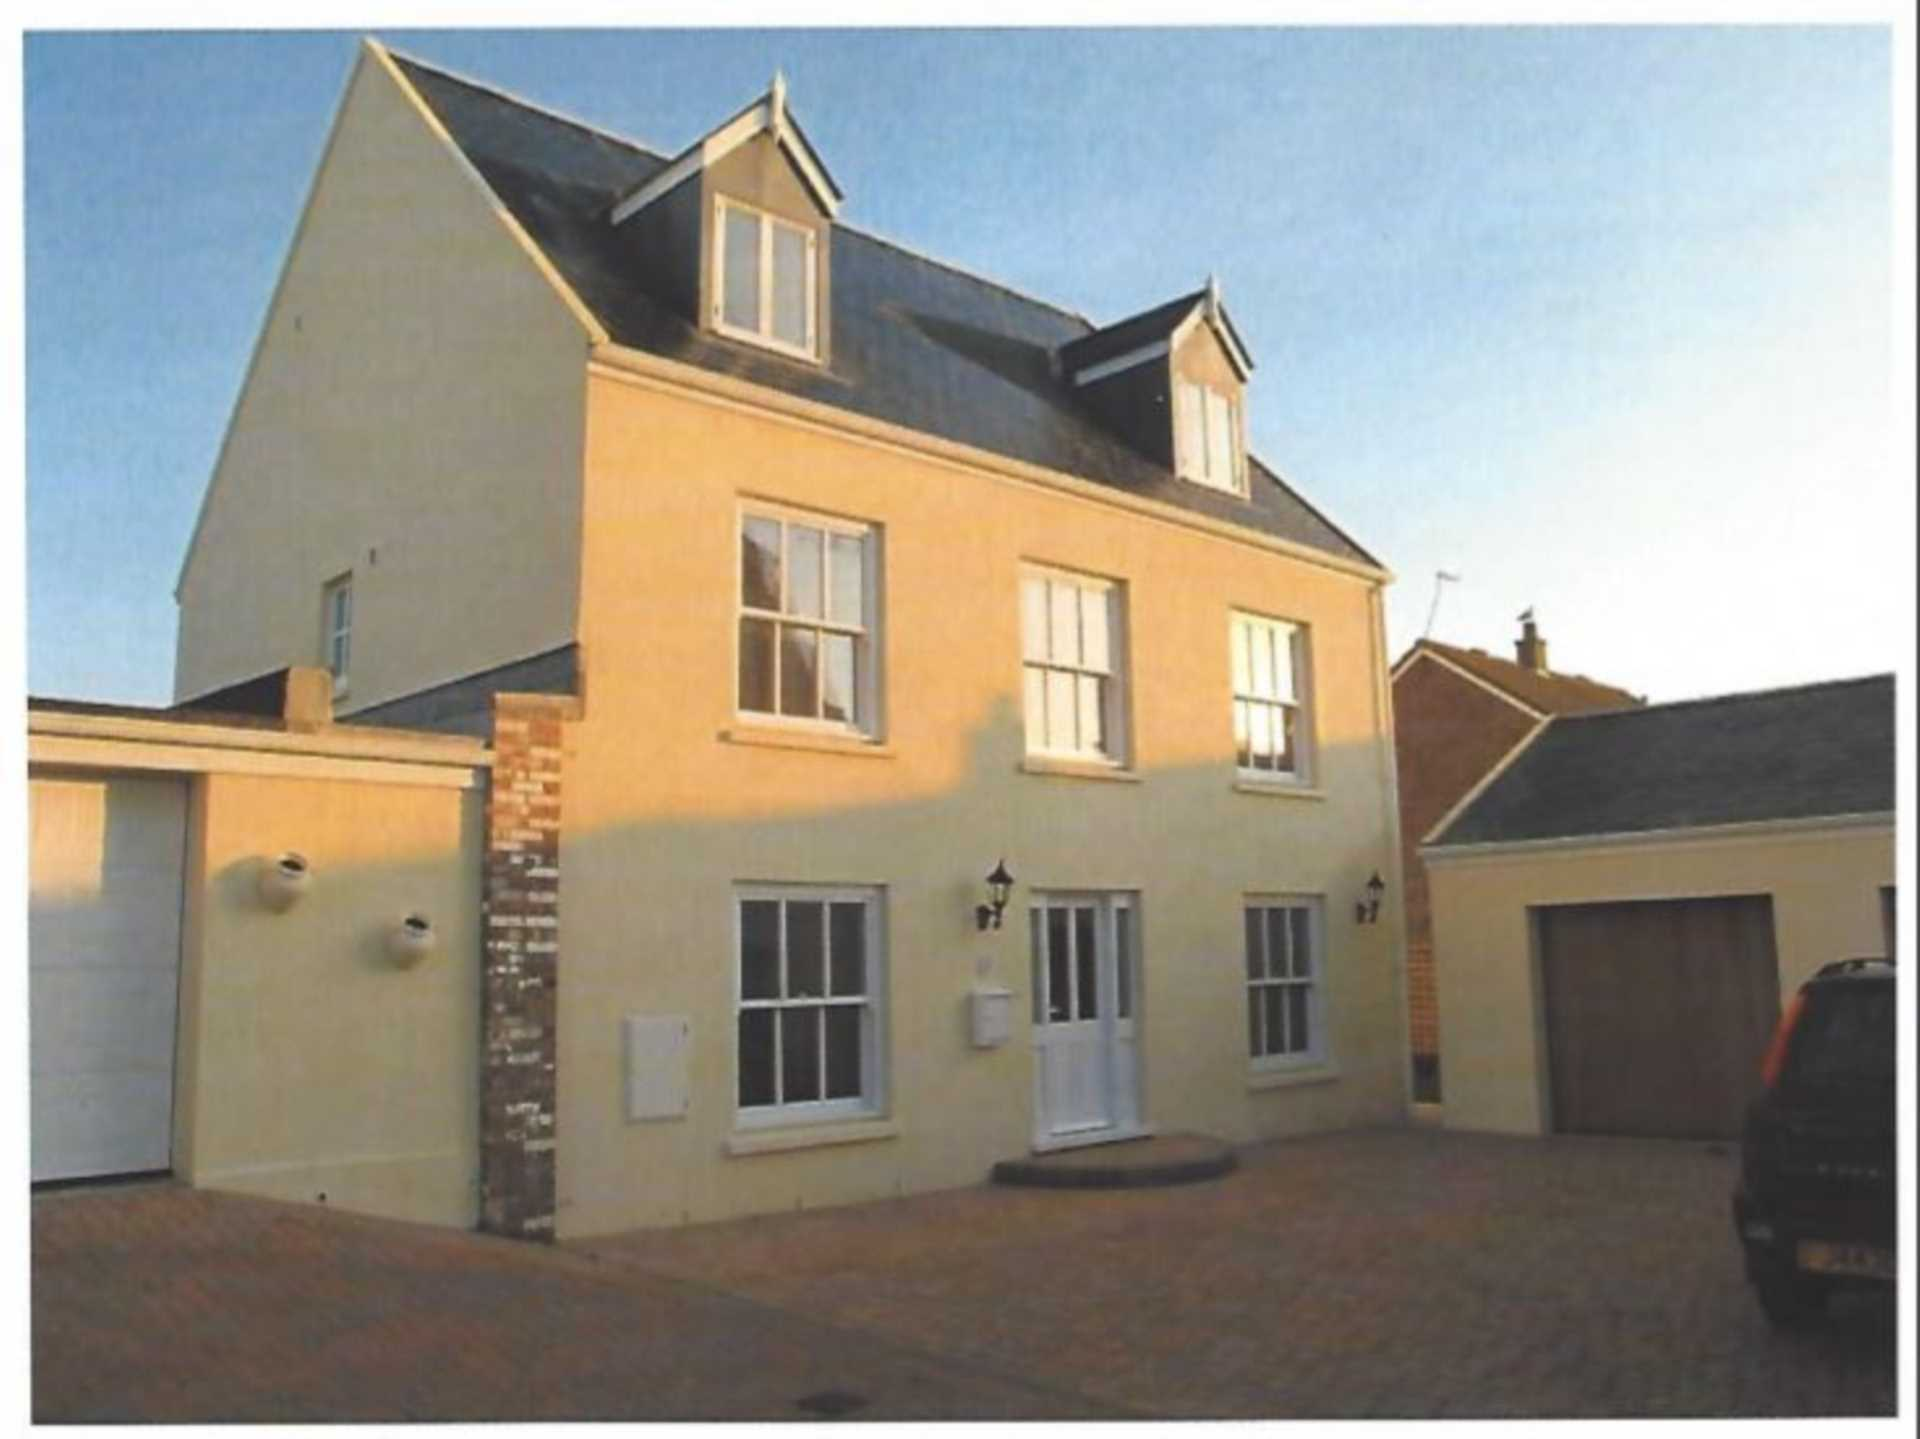 ST CLEMENT SOLE AGENT A FANTASTIC 5 BEDROOM 4 BATHROOM, ST